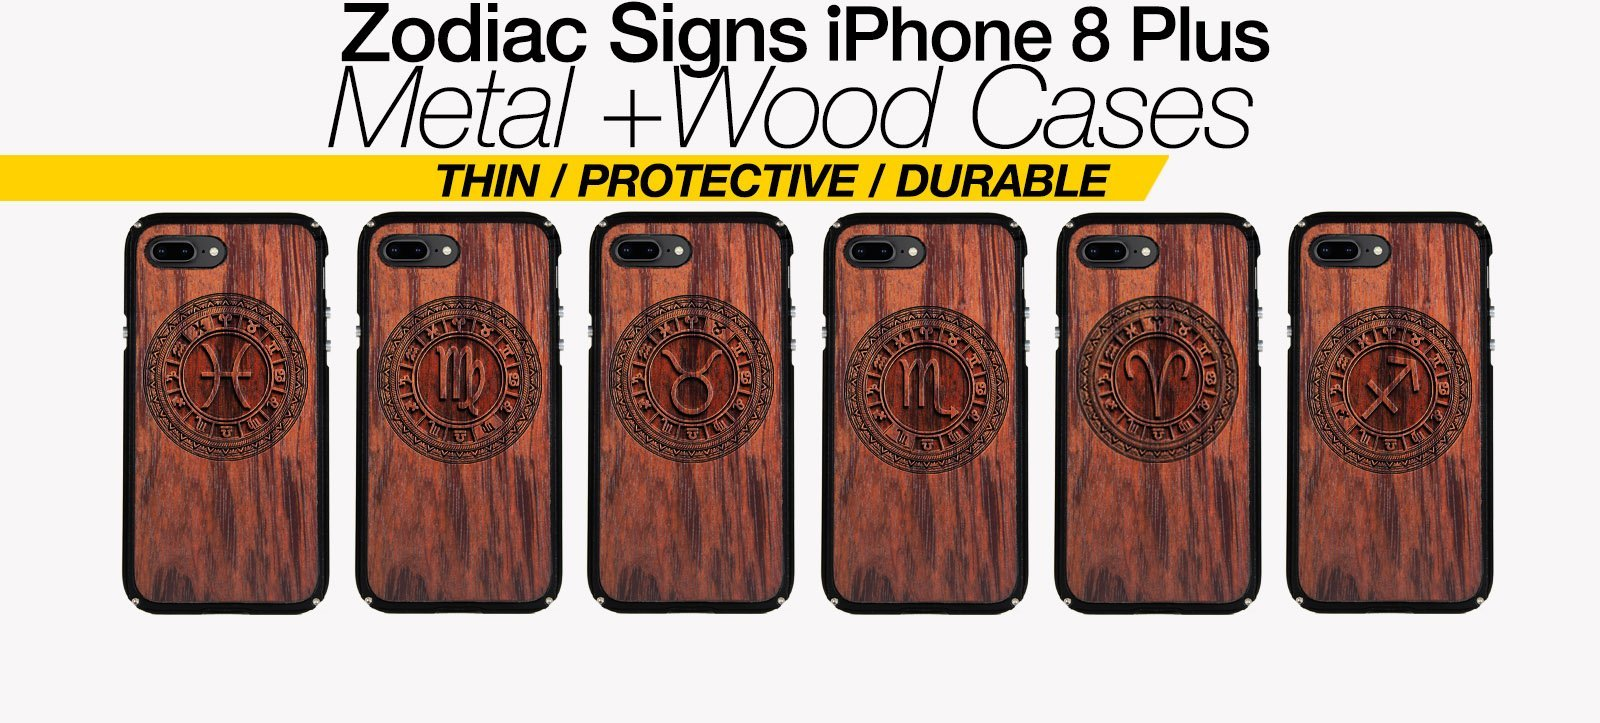 Zodiac Signs iPhone 8 Plus Cases Best Zodiac Horoscope Metal Wood iPhone 8 Plus Covers Gifts For Zodiac Lovers Fans Astrology Cases Phone Birthday Gifts For Astrology Lovers